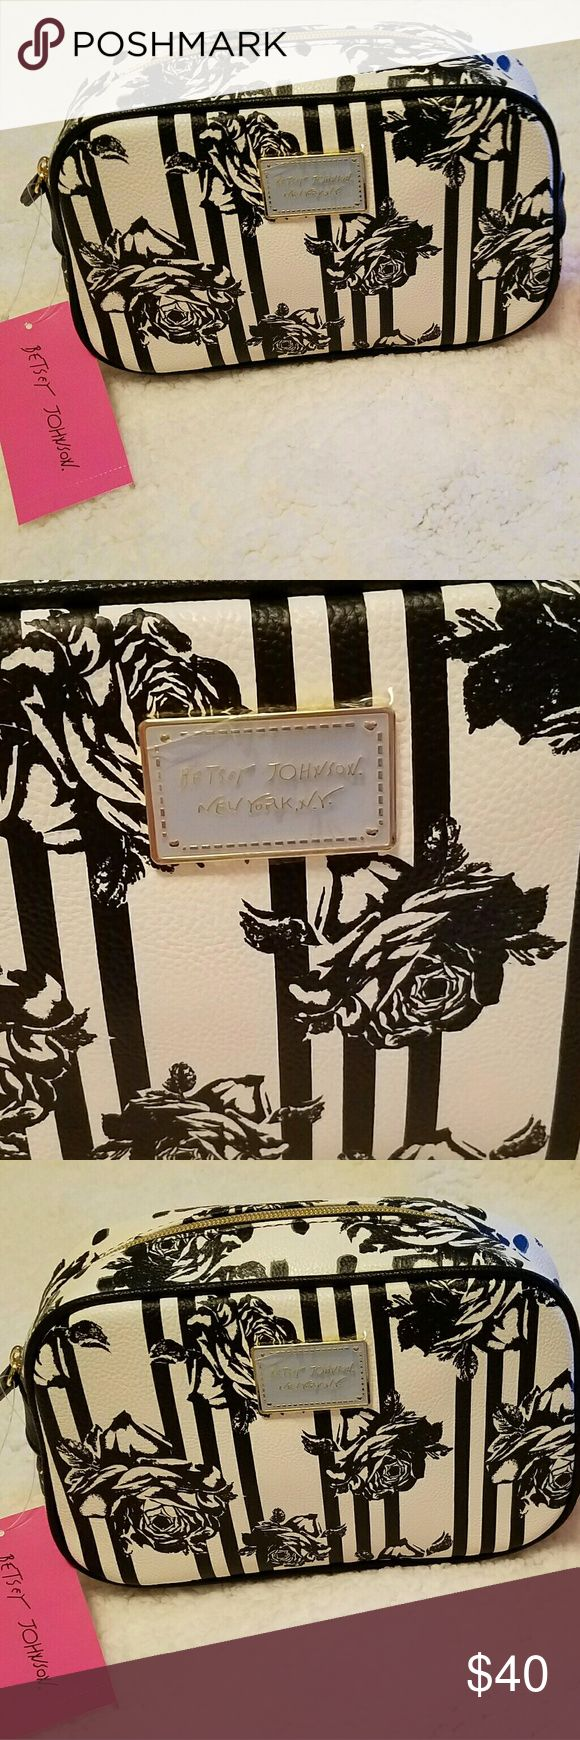 "NWT- BETSEY JOHNSON NY NY STYLE FLORAL DESIGN NWT- BETSEY JOHNSON NEW YORK NY STYLE FLORAL DESIGN COSMETIC BAG.  BEAUTIFUL DESIGN BLACK FLORAL PRINT AND EXTRA OPENING IN BACK   ZIPPER ENCLOSURE, SUPER CUTE LINING  APPROXIMATE SIZE 9""W X 5""H X 3.5""W  🌹NWT-BRAND NEW WITH TAGS - NEVER USED 🌹100% AUTHENTIC 🌹SAME DAY SHIPPING 🌹NO TRADES  🚫PLEASE READ MY CLOSET RULES AND FOLLOW PLEASE NO RUDE COMMENTS LETS ALL BE RESPECTFUL TOWARDS ONE ANOTHER 😊  💋www.shopaprilsboutique.com💋 Betsey Johnson…"